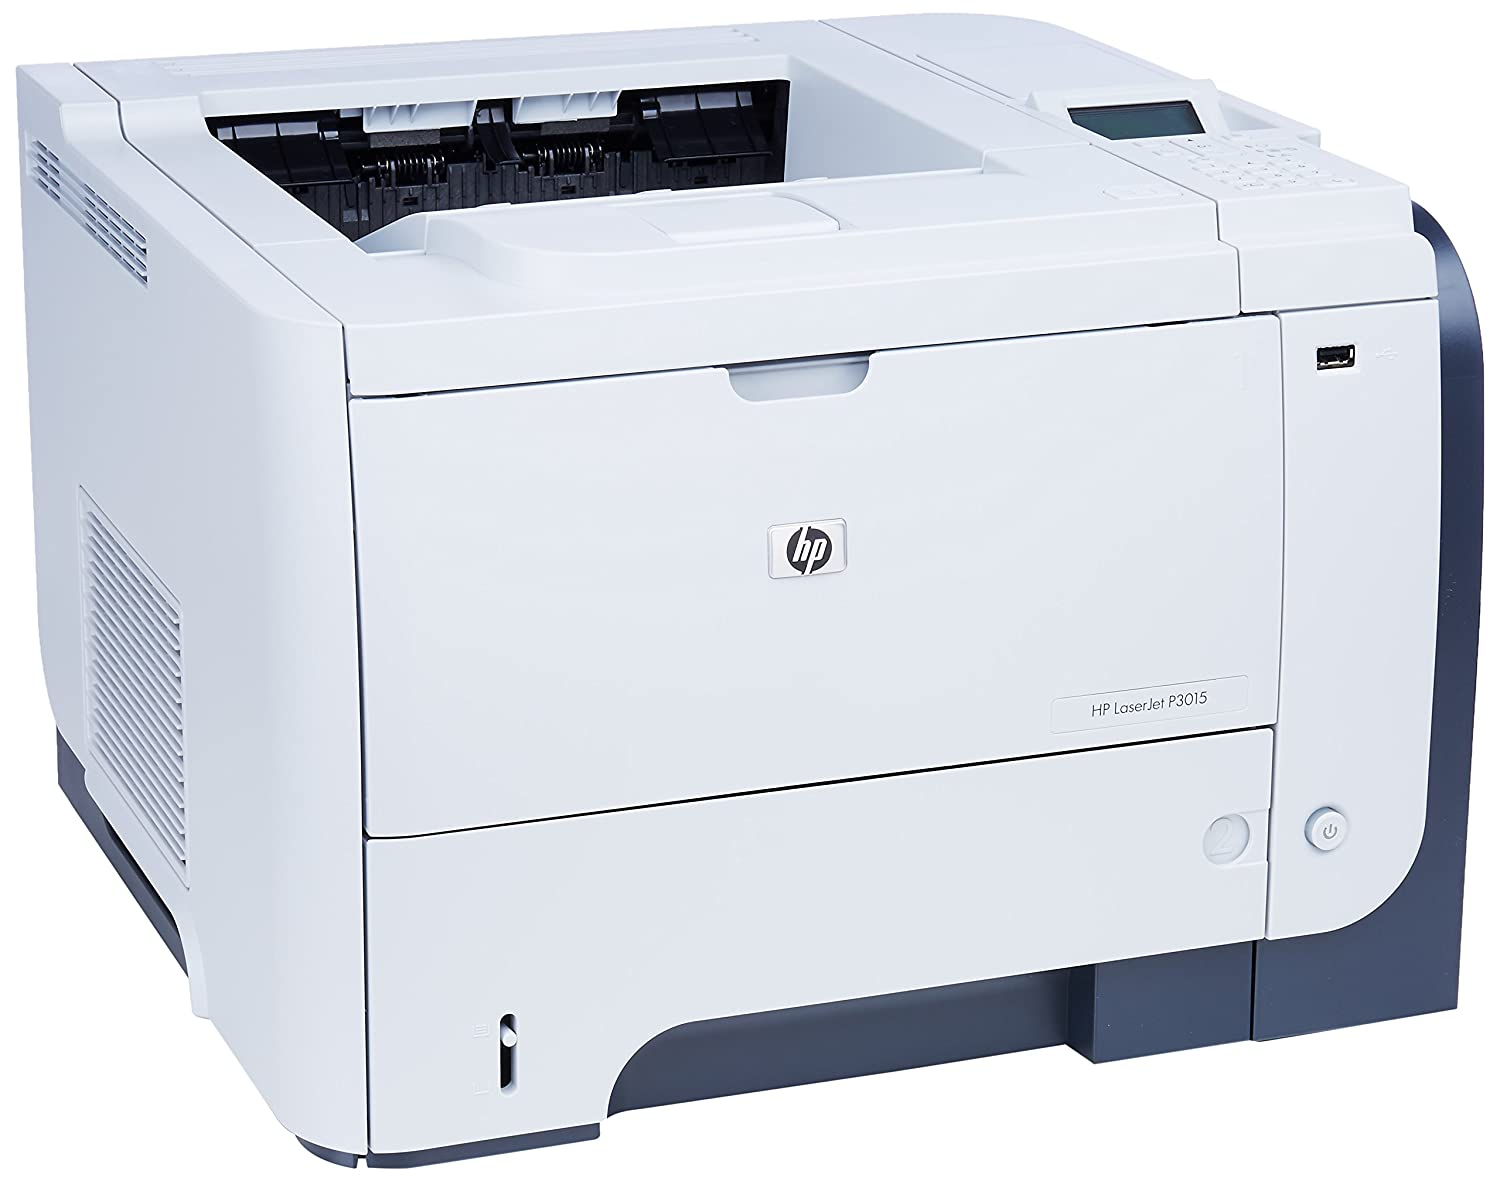 hp laserjet p3015dn printer black silver ebay. Black Bedroom Furniture Sets. Home Design Ideas